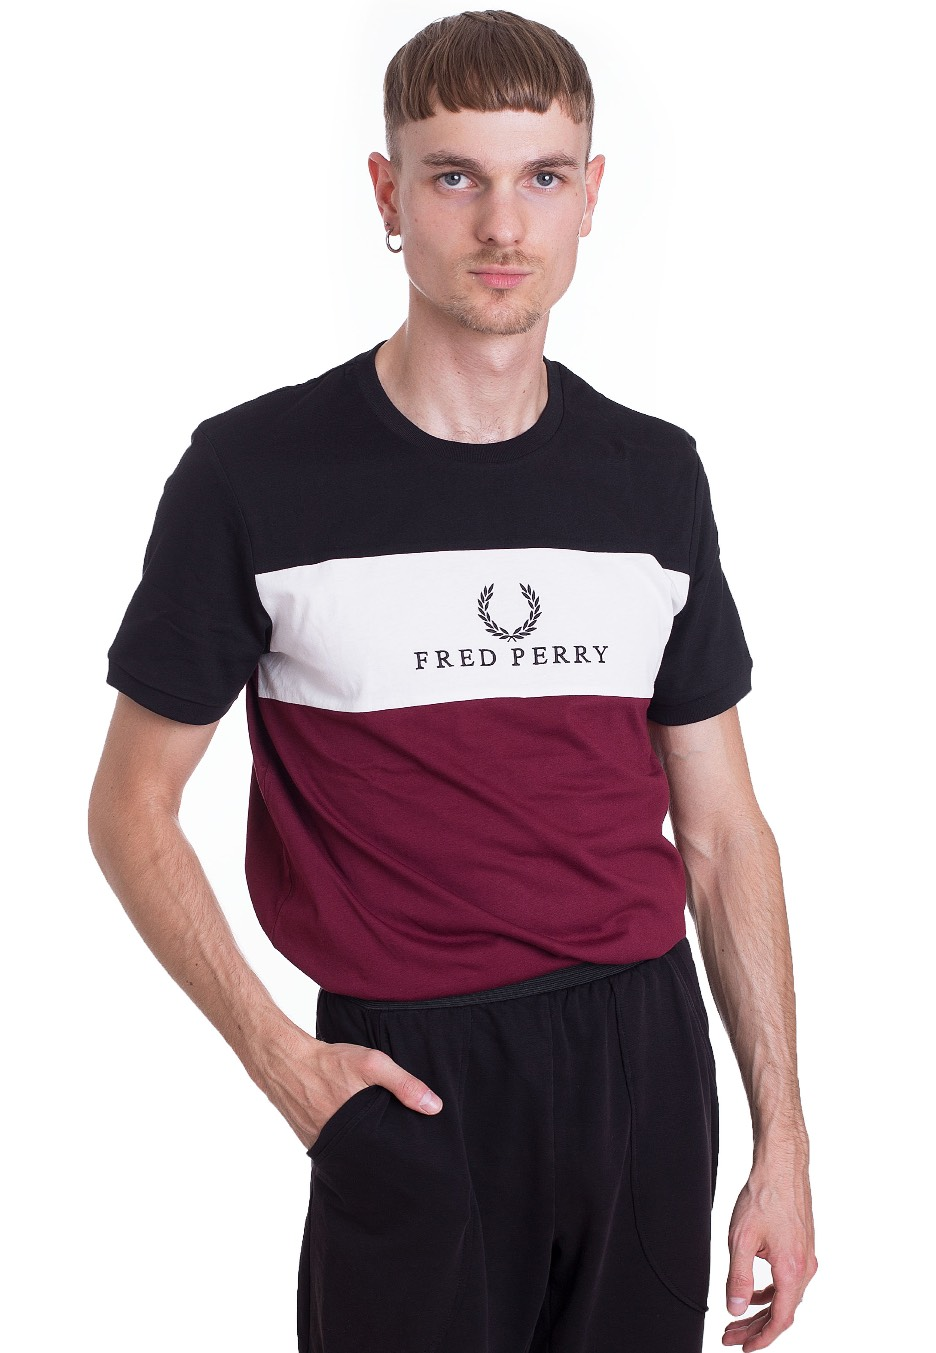 eb3ed807d364 Fred Perry - Embroidered Panel Tawny Port - T-Shirt - Streetwear Shop -  Impericon.com Worldwide